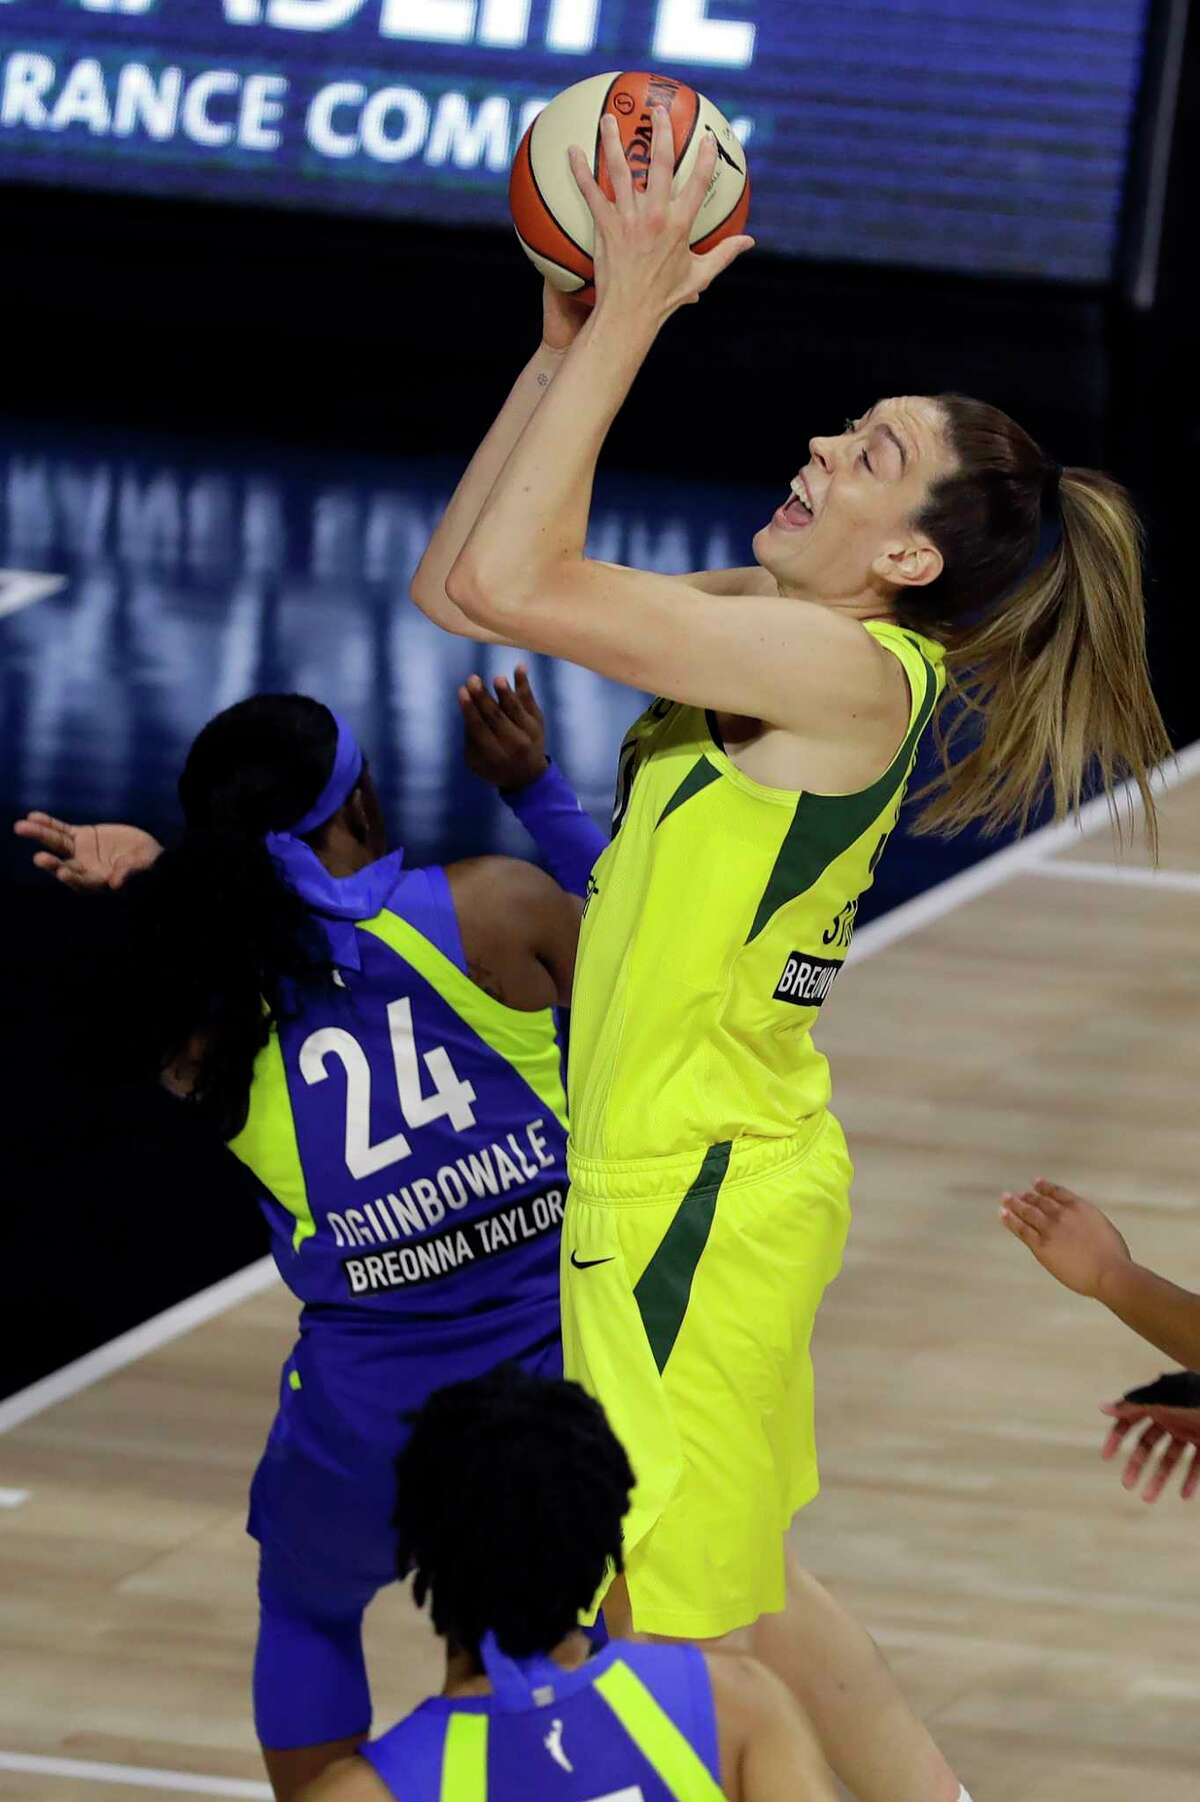 Seattle Storm forward Breanna Stewart (30) shoots over Dallas Wings guard Arike Ogunbowale (24) during the first half of a WNBA basketball game Friday, Aug. 14, 2020, in Bradenton, Fla. (AP Photo/Chris O'Meara)